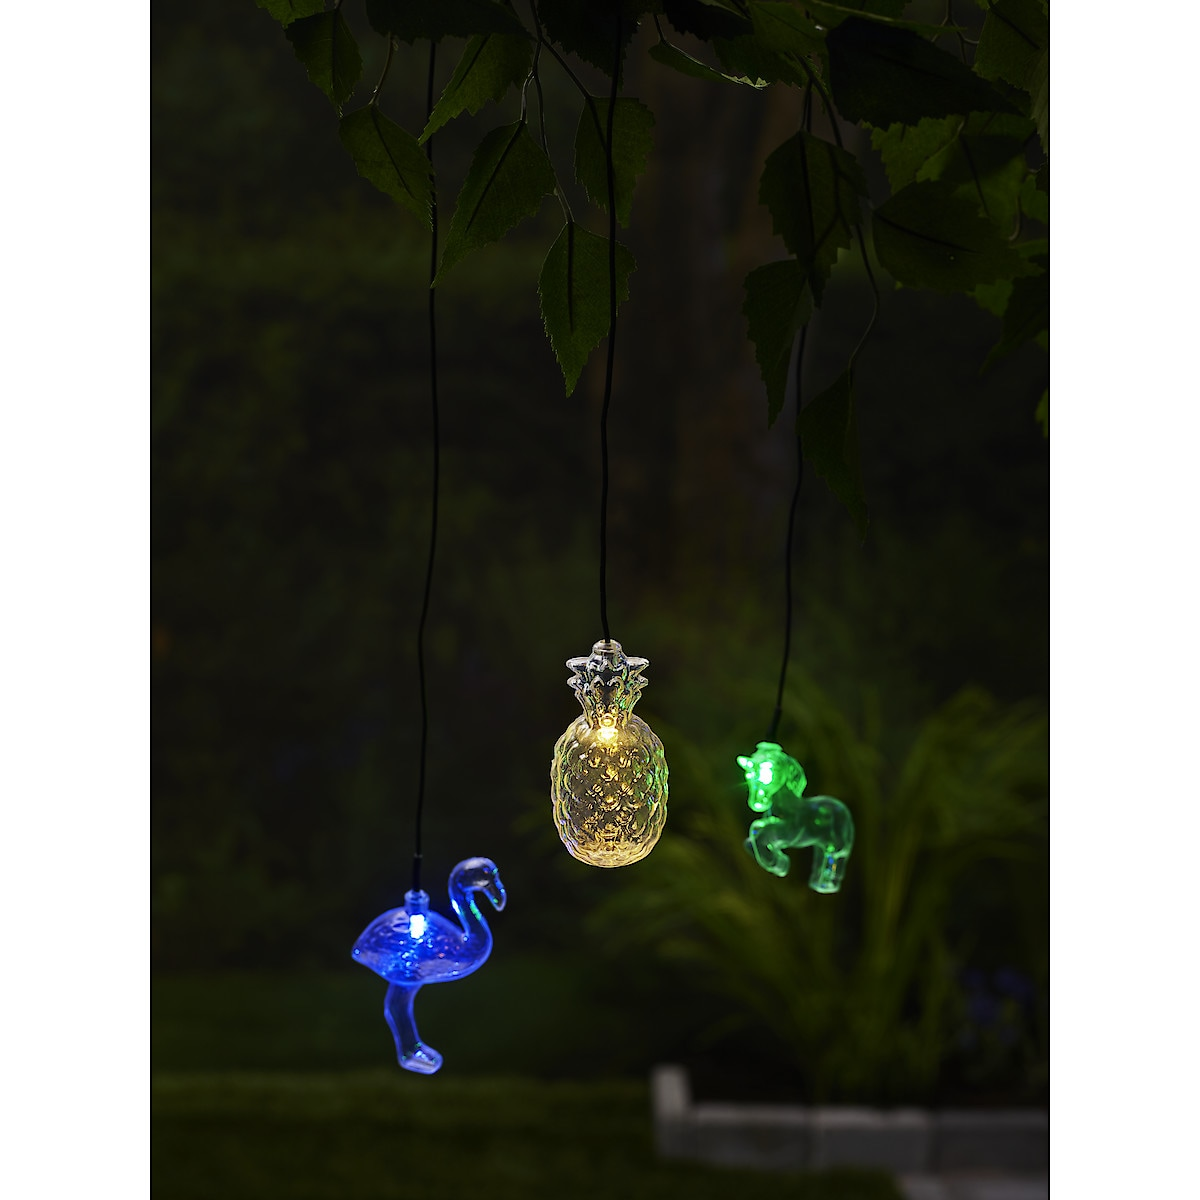 Hanging Solar Light